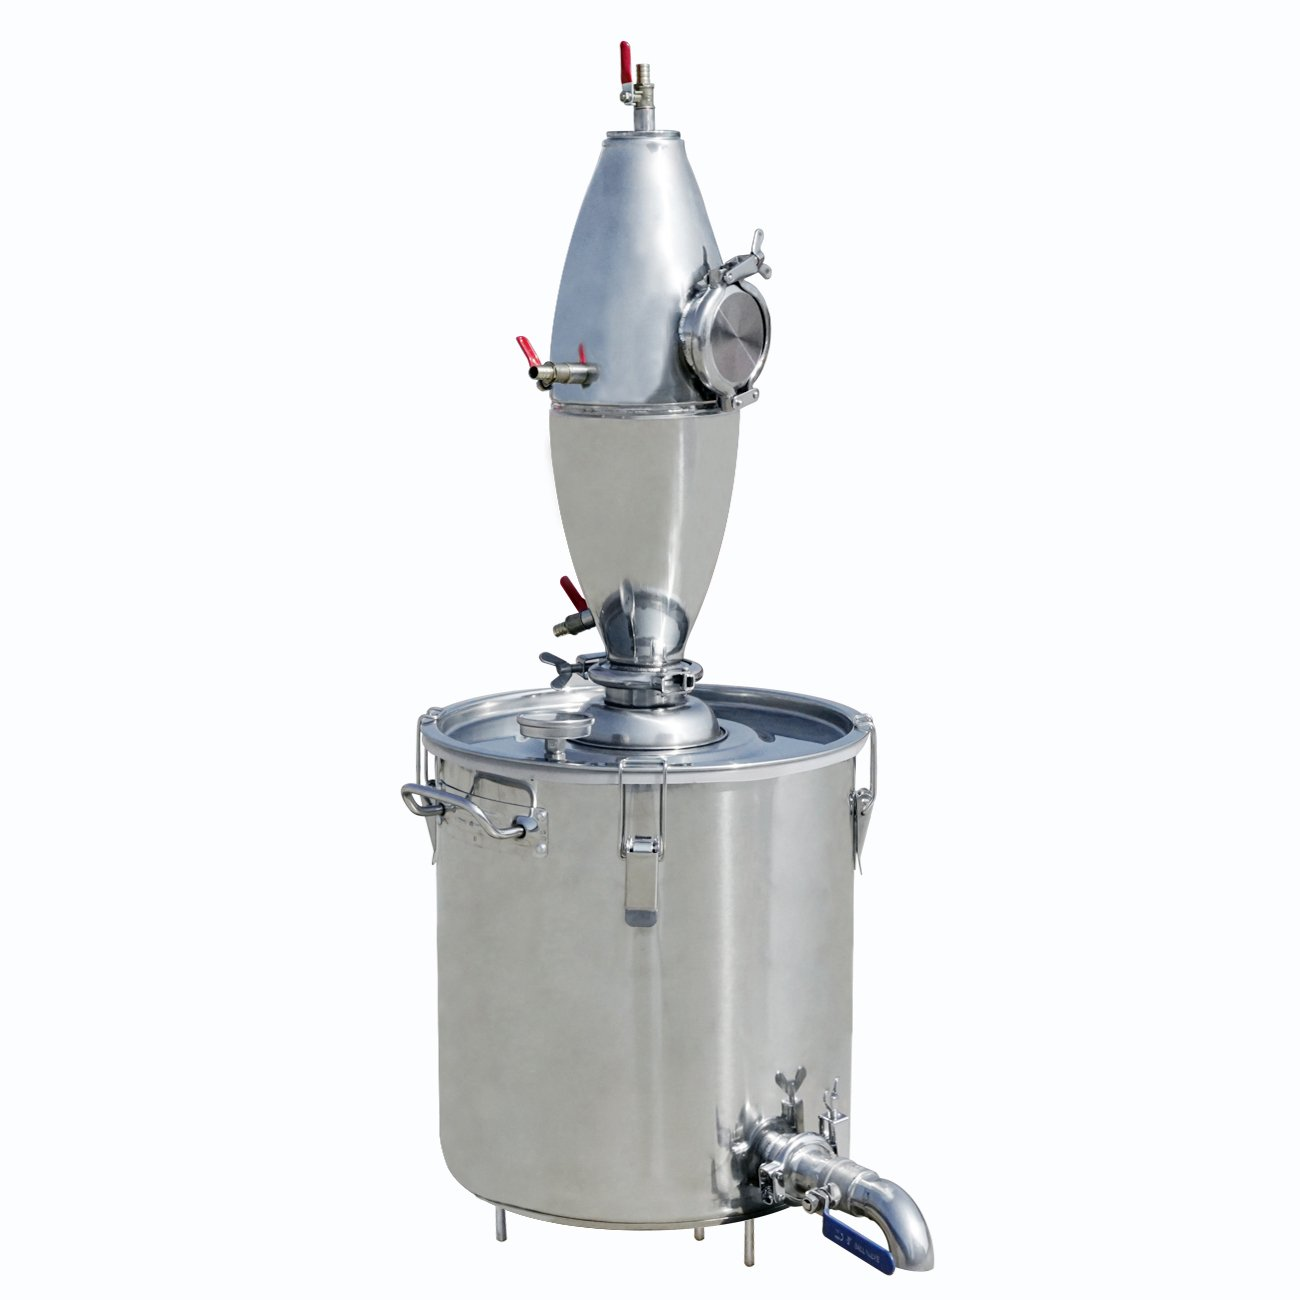 ECO-WORTHY 18.5Gal Water Alcohol Distiller 70L 304 Stainless Steel Alcohol Distiller Home Kit Moonshine Wine Making Boiler with Thermometer for Home Brewing (18.5Gal 70L Distiller)